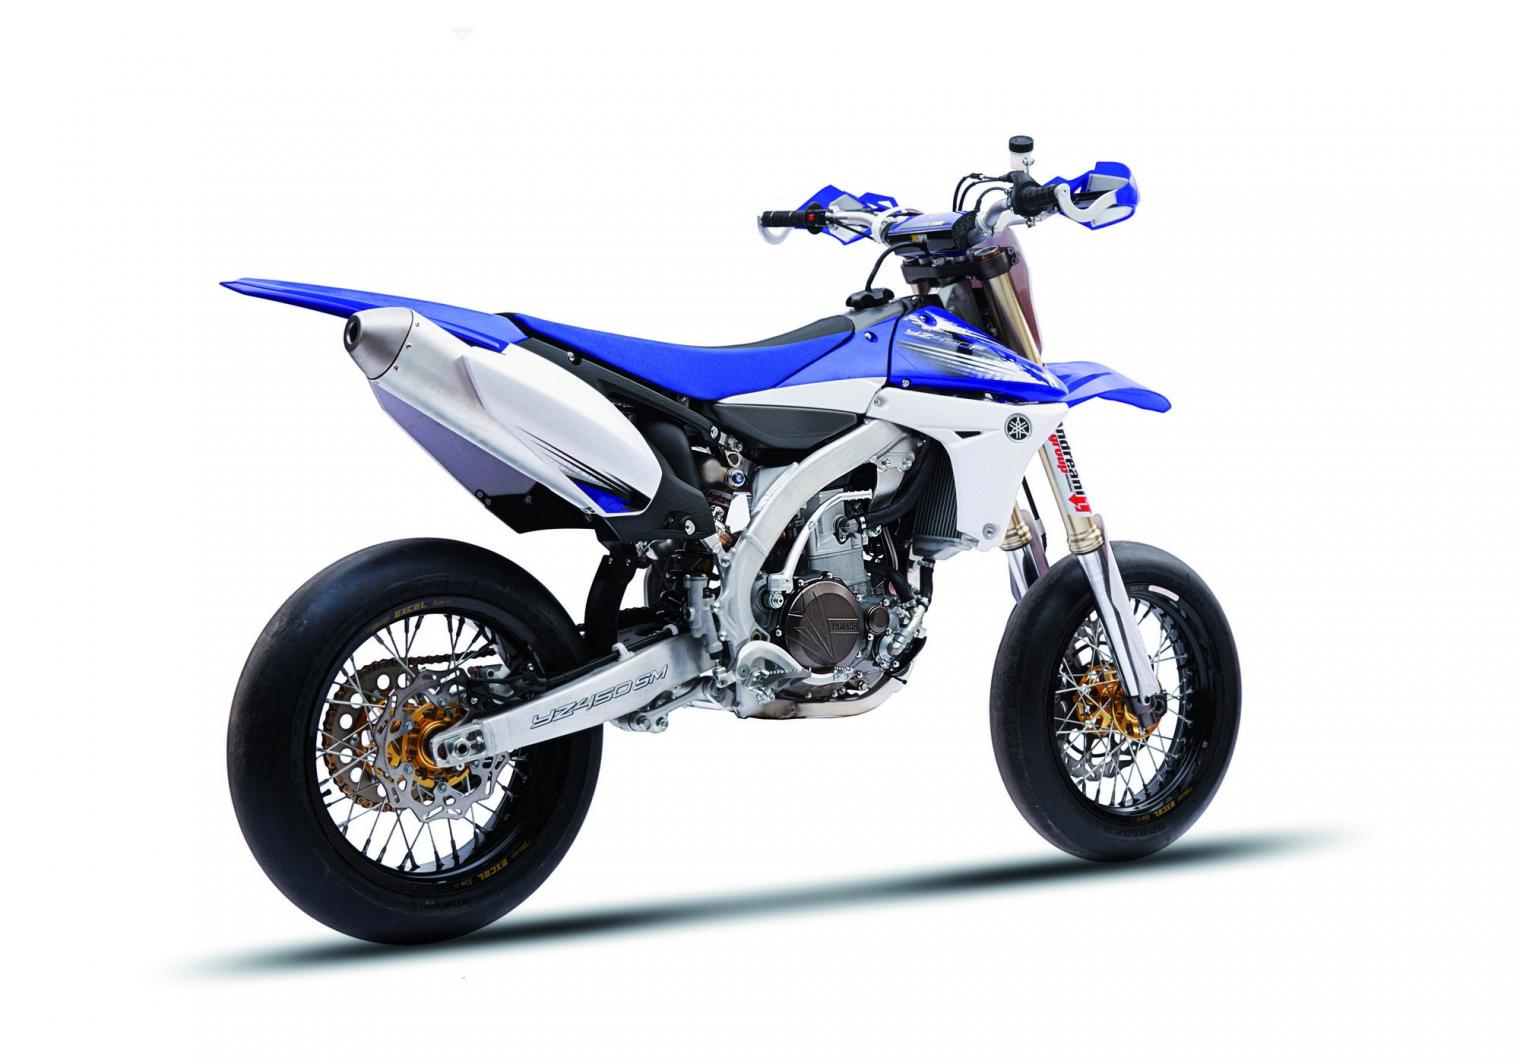 foto yamaha yamaha yz450sm raffinata motard da pista. Black Bedroom Furniture Sets. Home Design Ideas